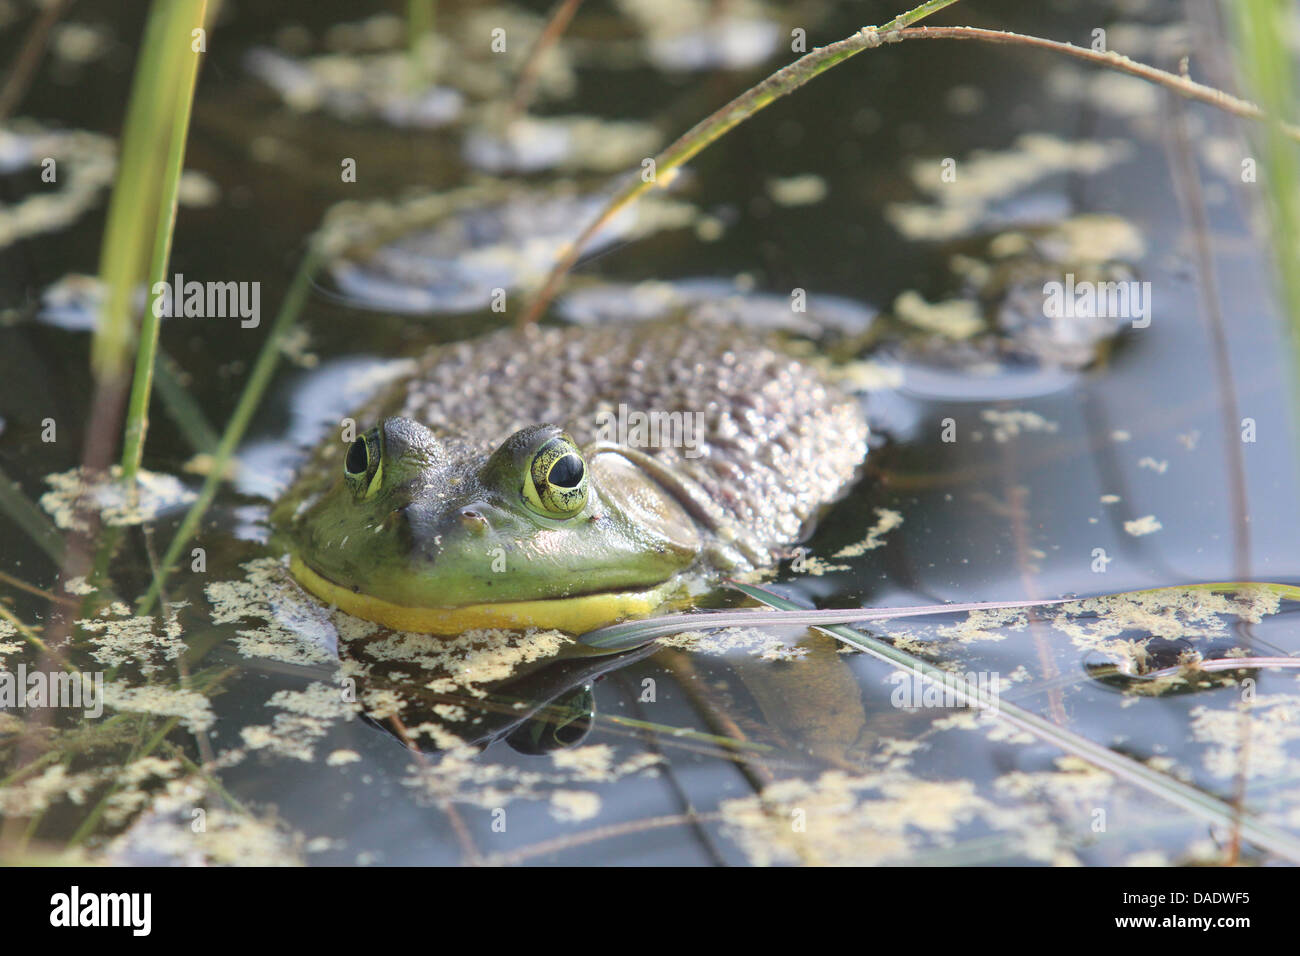 Large bullfrog in water Stock Photo